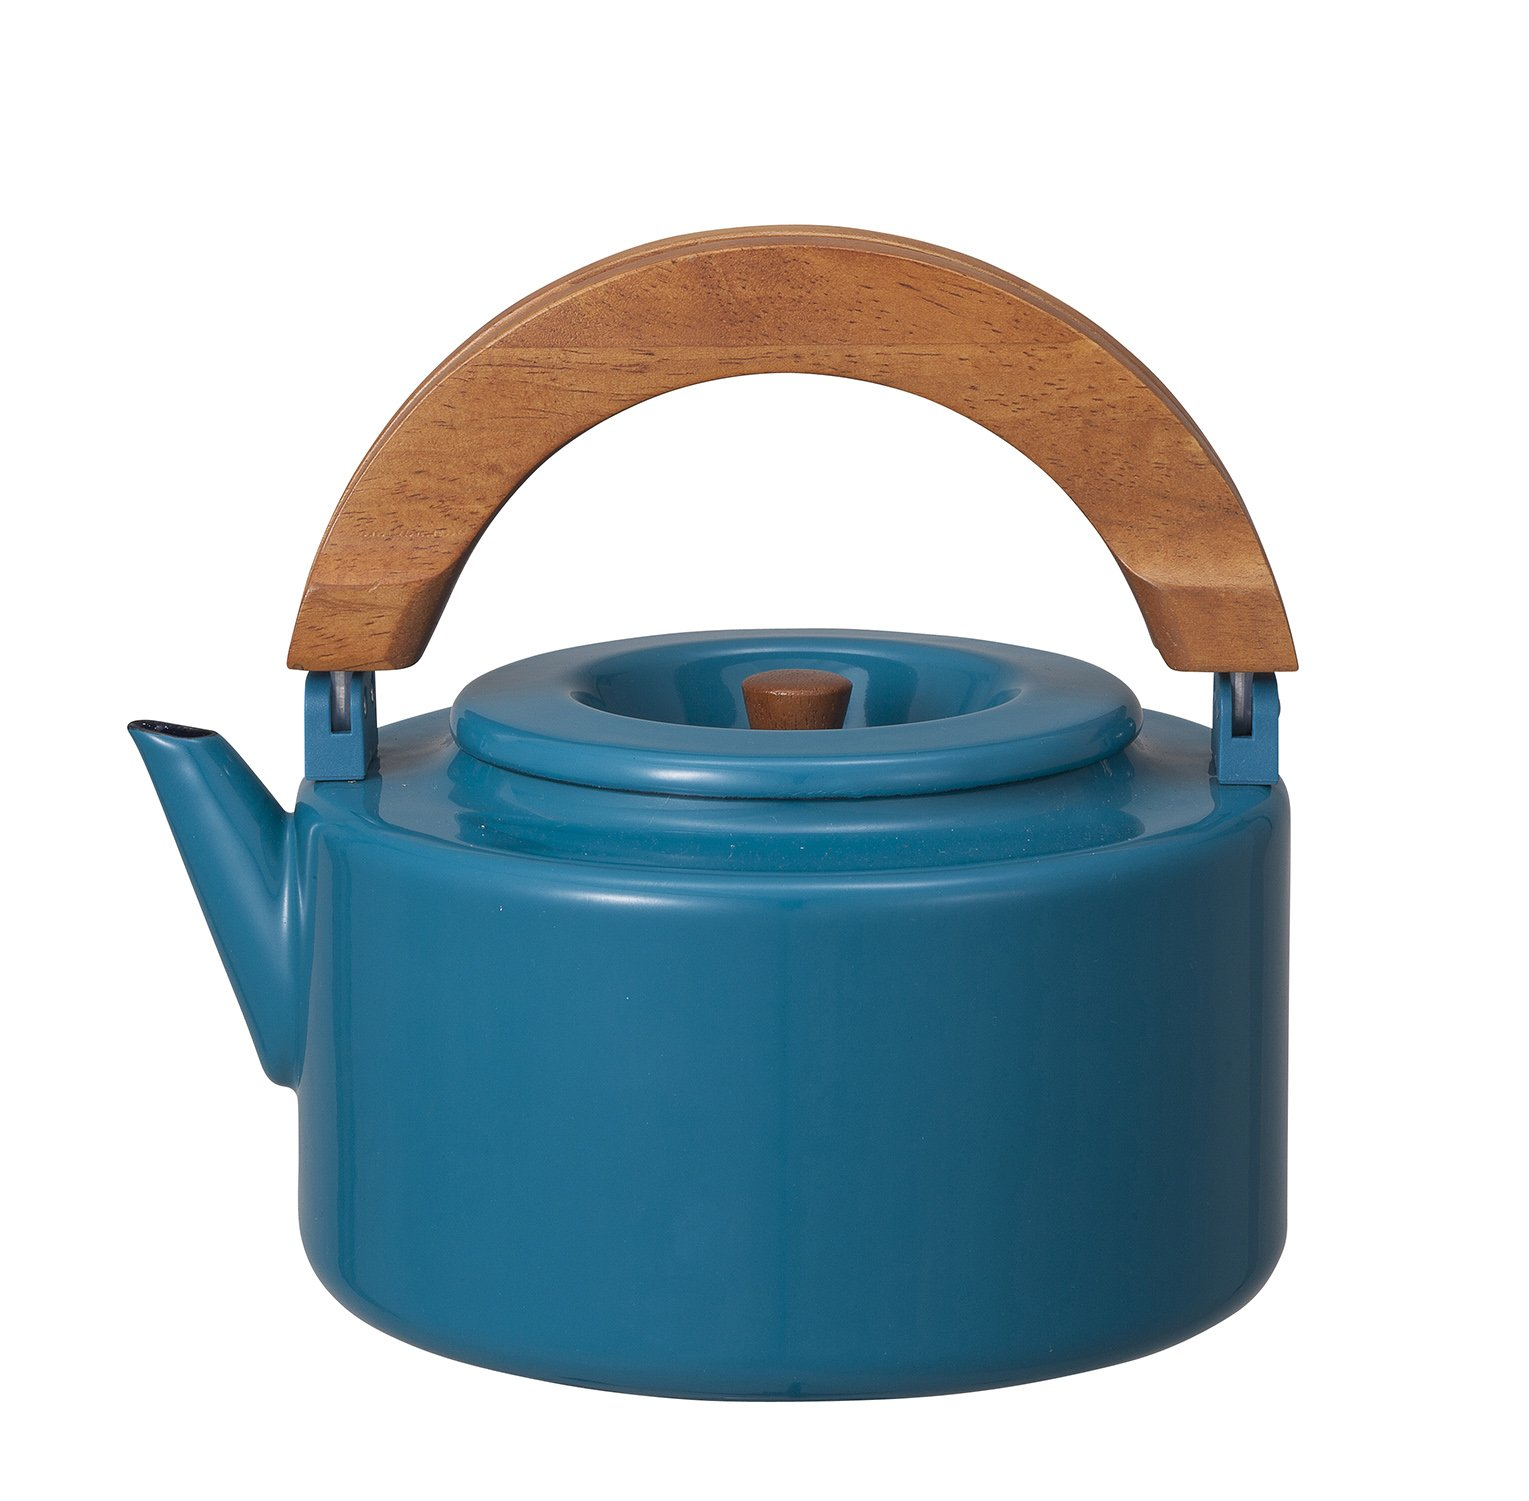 CB JAPAN Nordica Flat Kettle (Turquoise)【Japan Domestic genuine products】